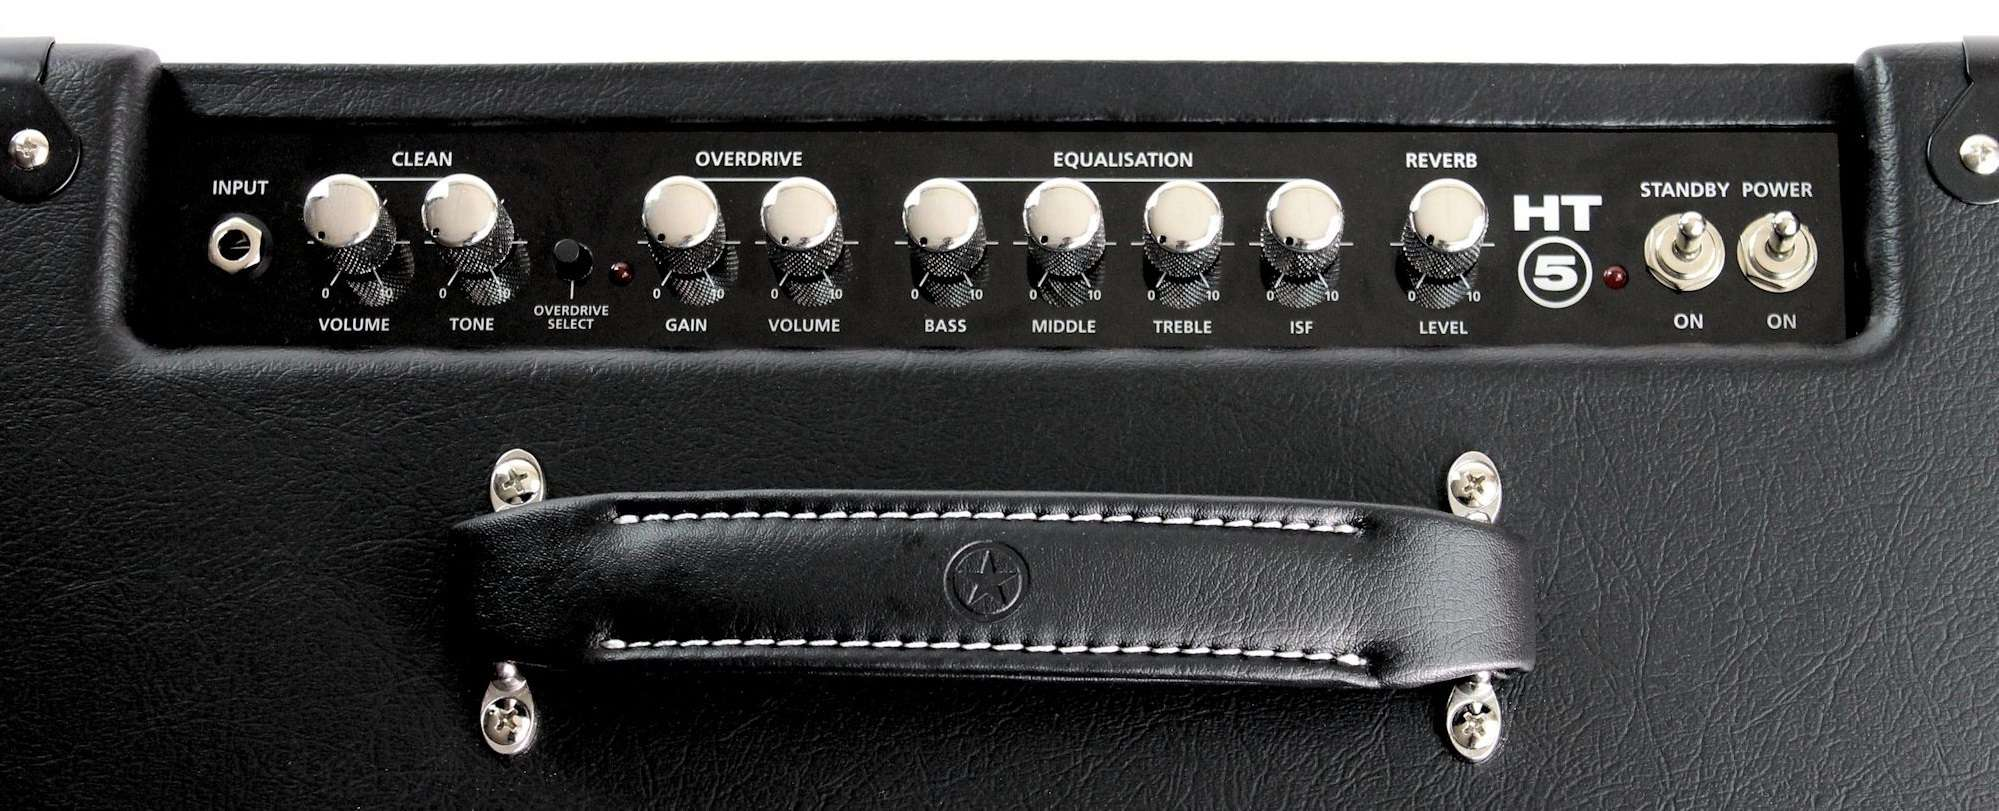 Blackstar HT-5R is powered by one 12AX7 preamp tube and one 12BH7 power tube.